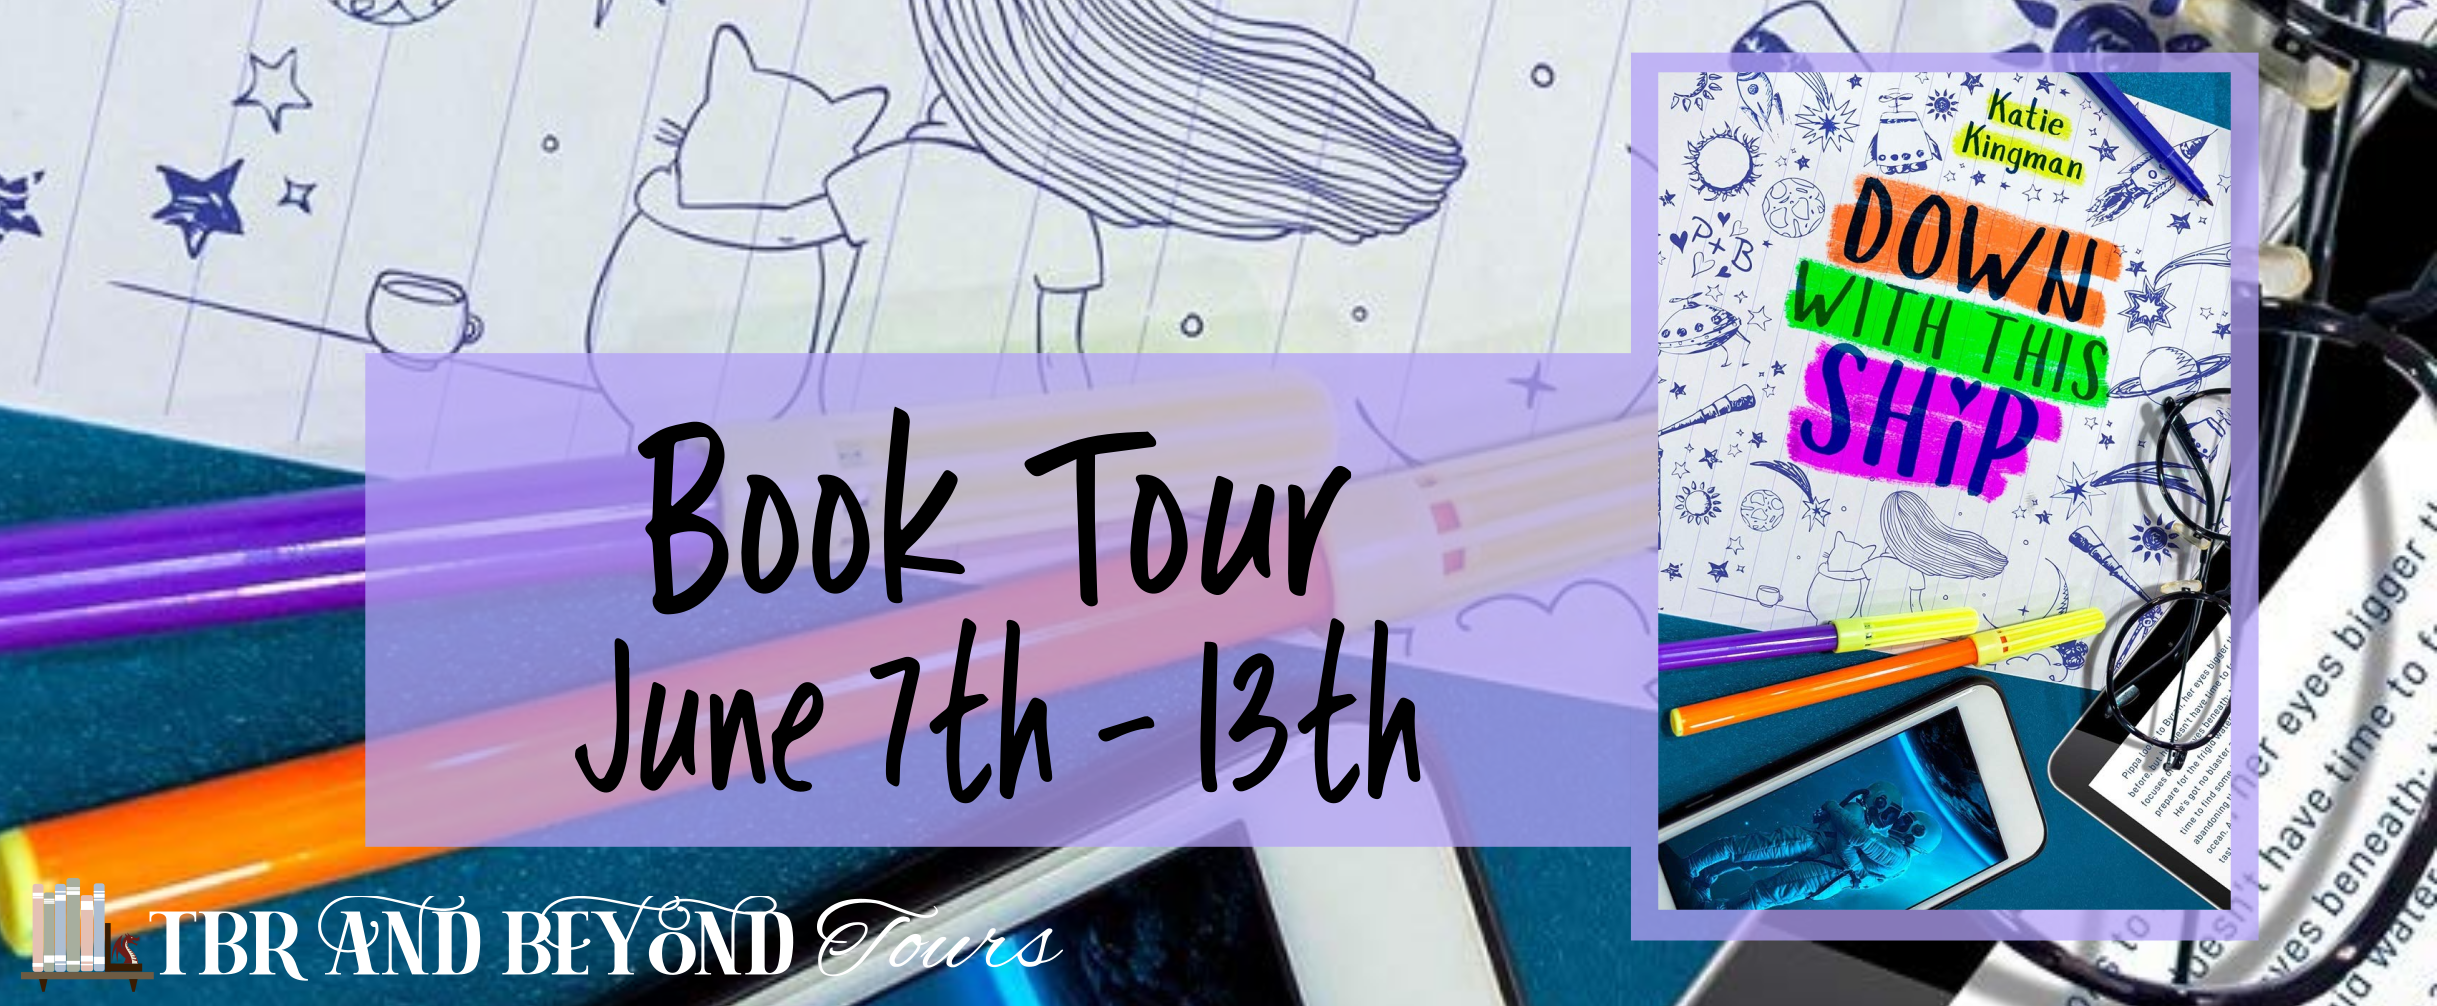 Down with this ship tour banner